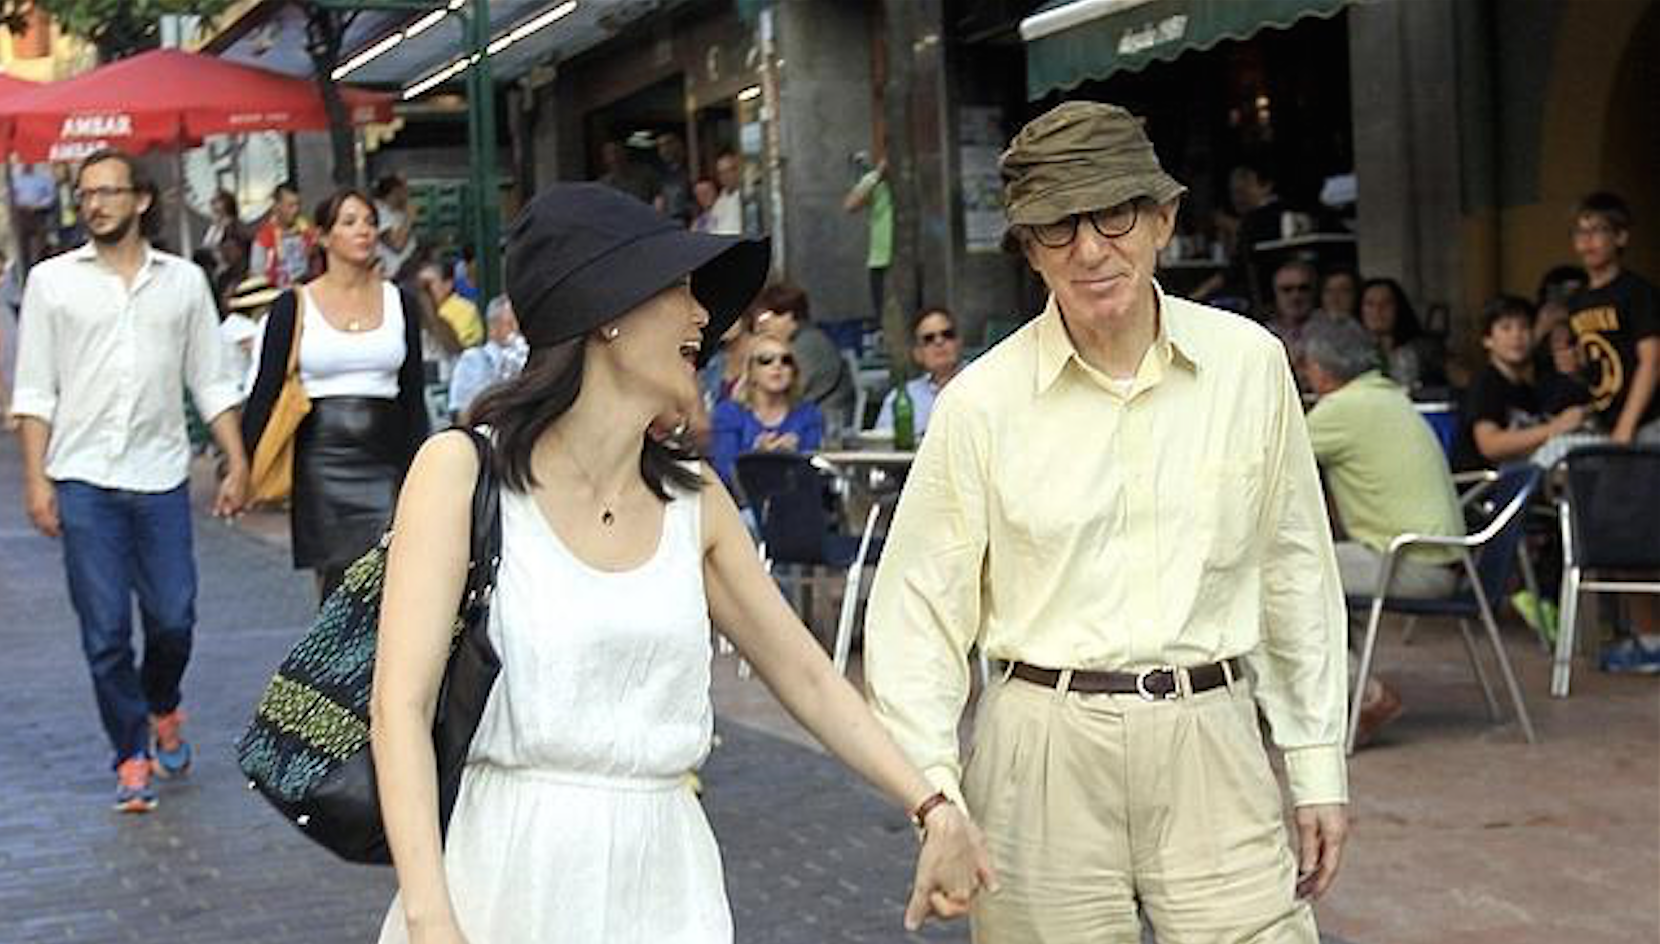 Soon-Yi Previn and Woody Allen holidaying in Oviedo, July 2015